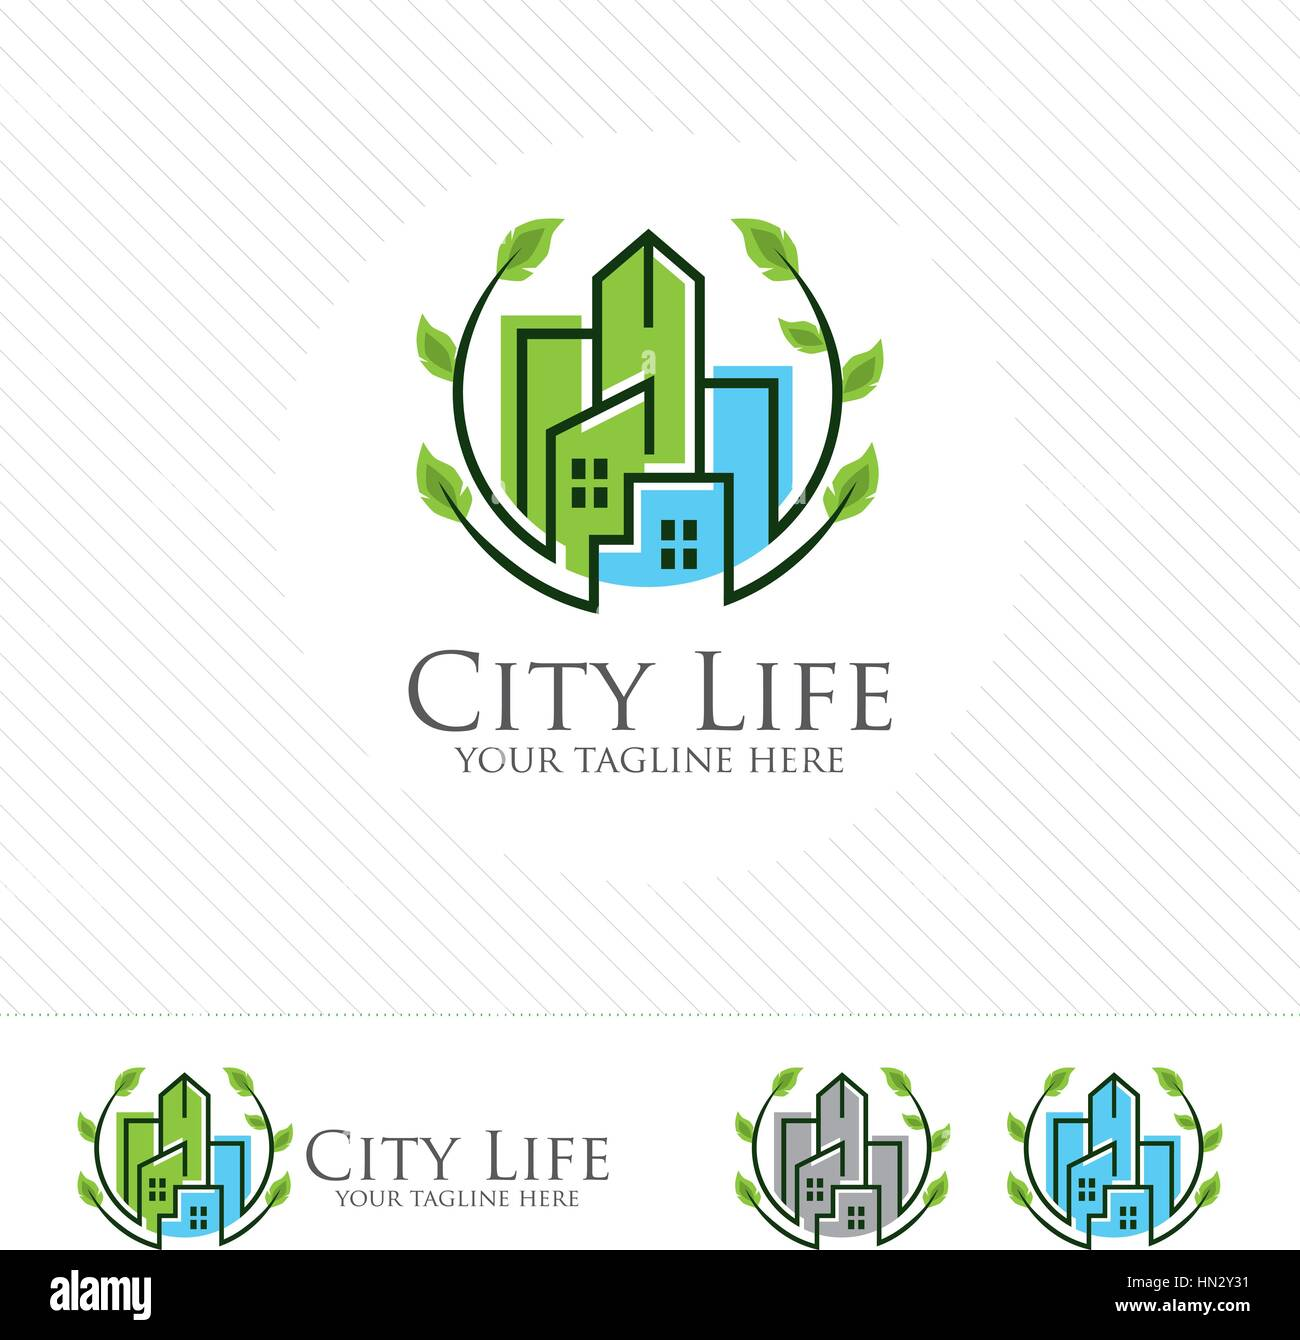 Abstract green city building logo design concept. Symbol icon of residential, apartment and city landscape. - Stock Vector